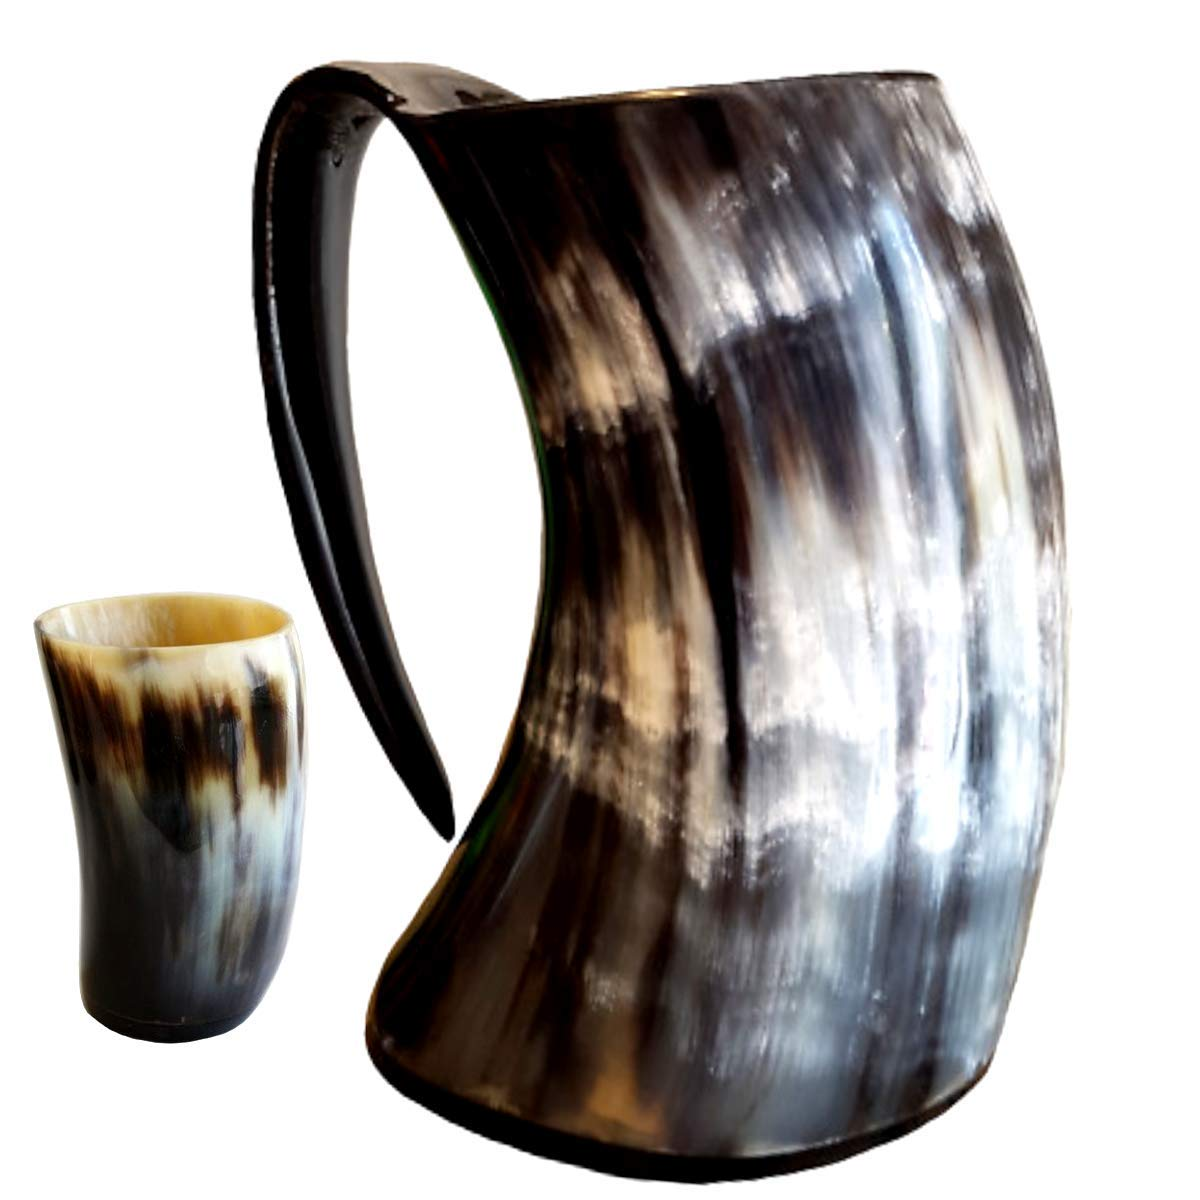 Genuine Viking Drinking Horn Mug Medieval Beer Tankard   20oz capacity   Highest Quality Horn Cup/Stein With Free Horn Shot Glass   Perfect Gift